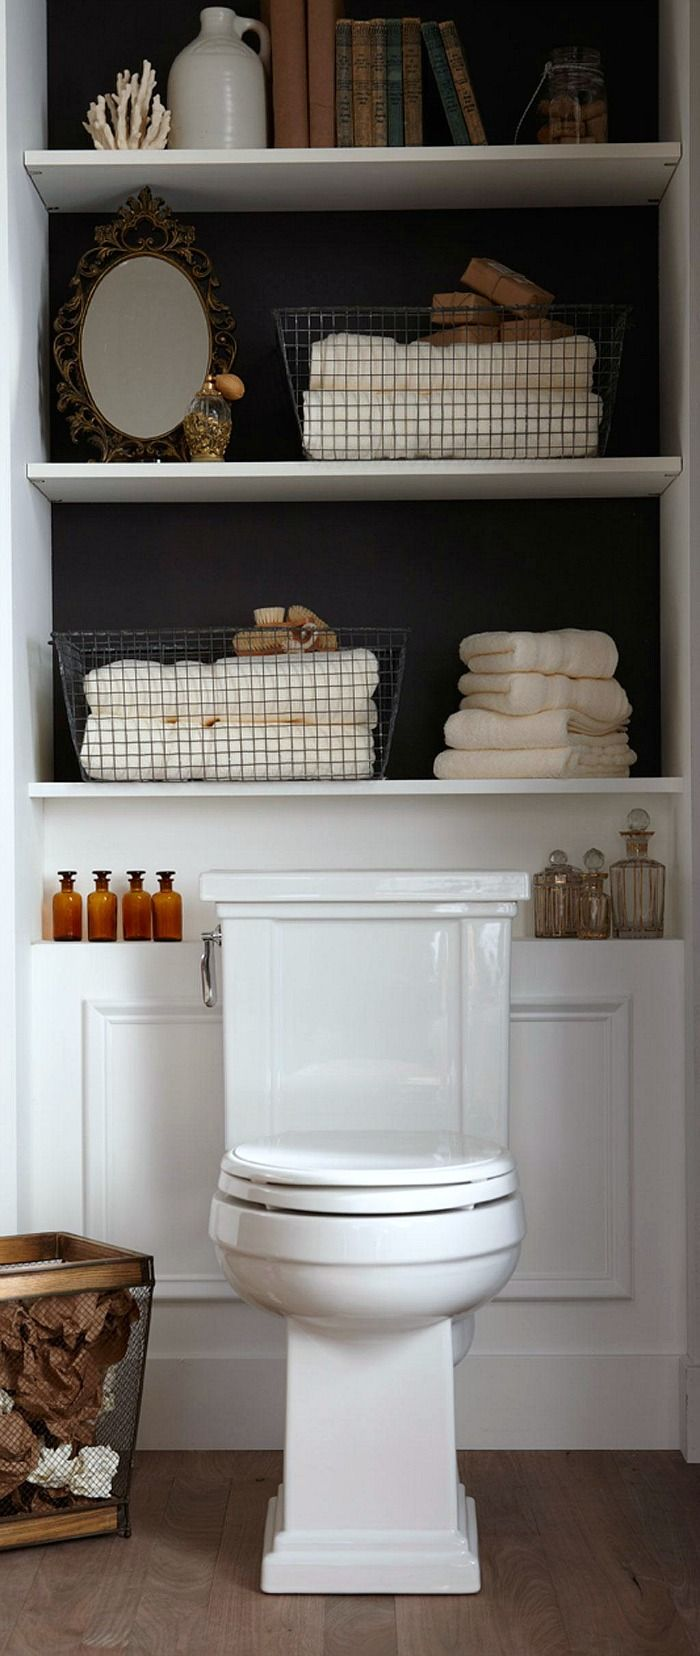 Best  Small Bathrooms Ideas On Pinterest - Great small bathrooms